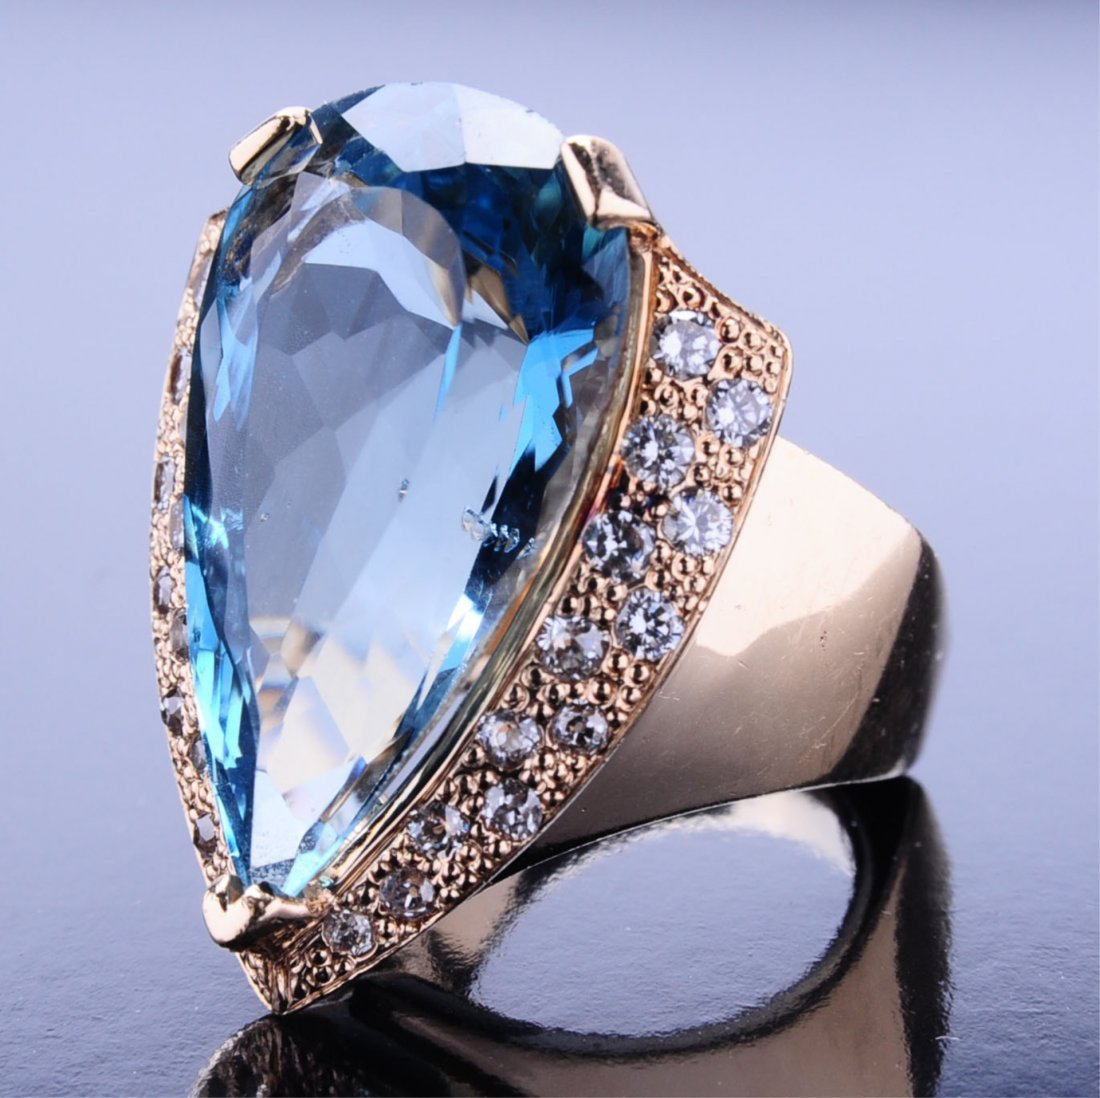 LADIES' 32 CARAT BLUE TOPAZ FASHION RING WITH DIAMONDS